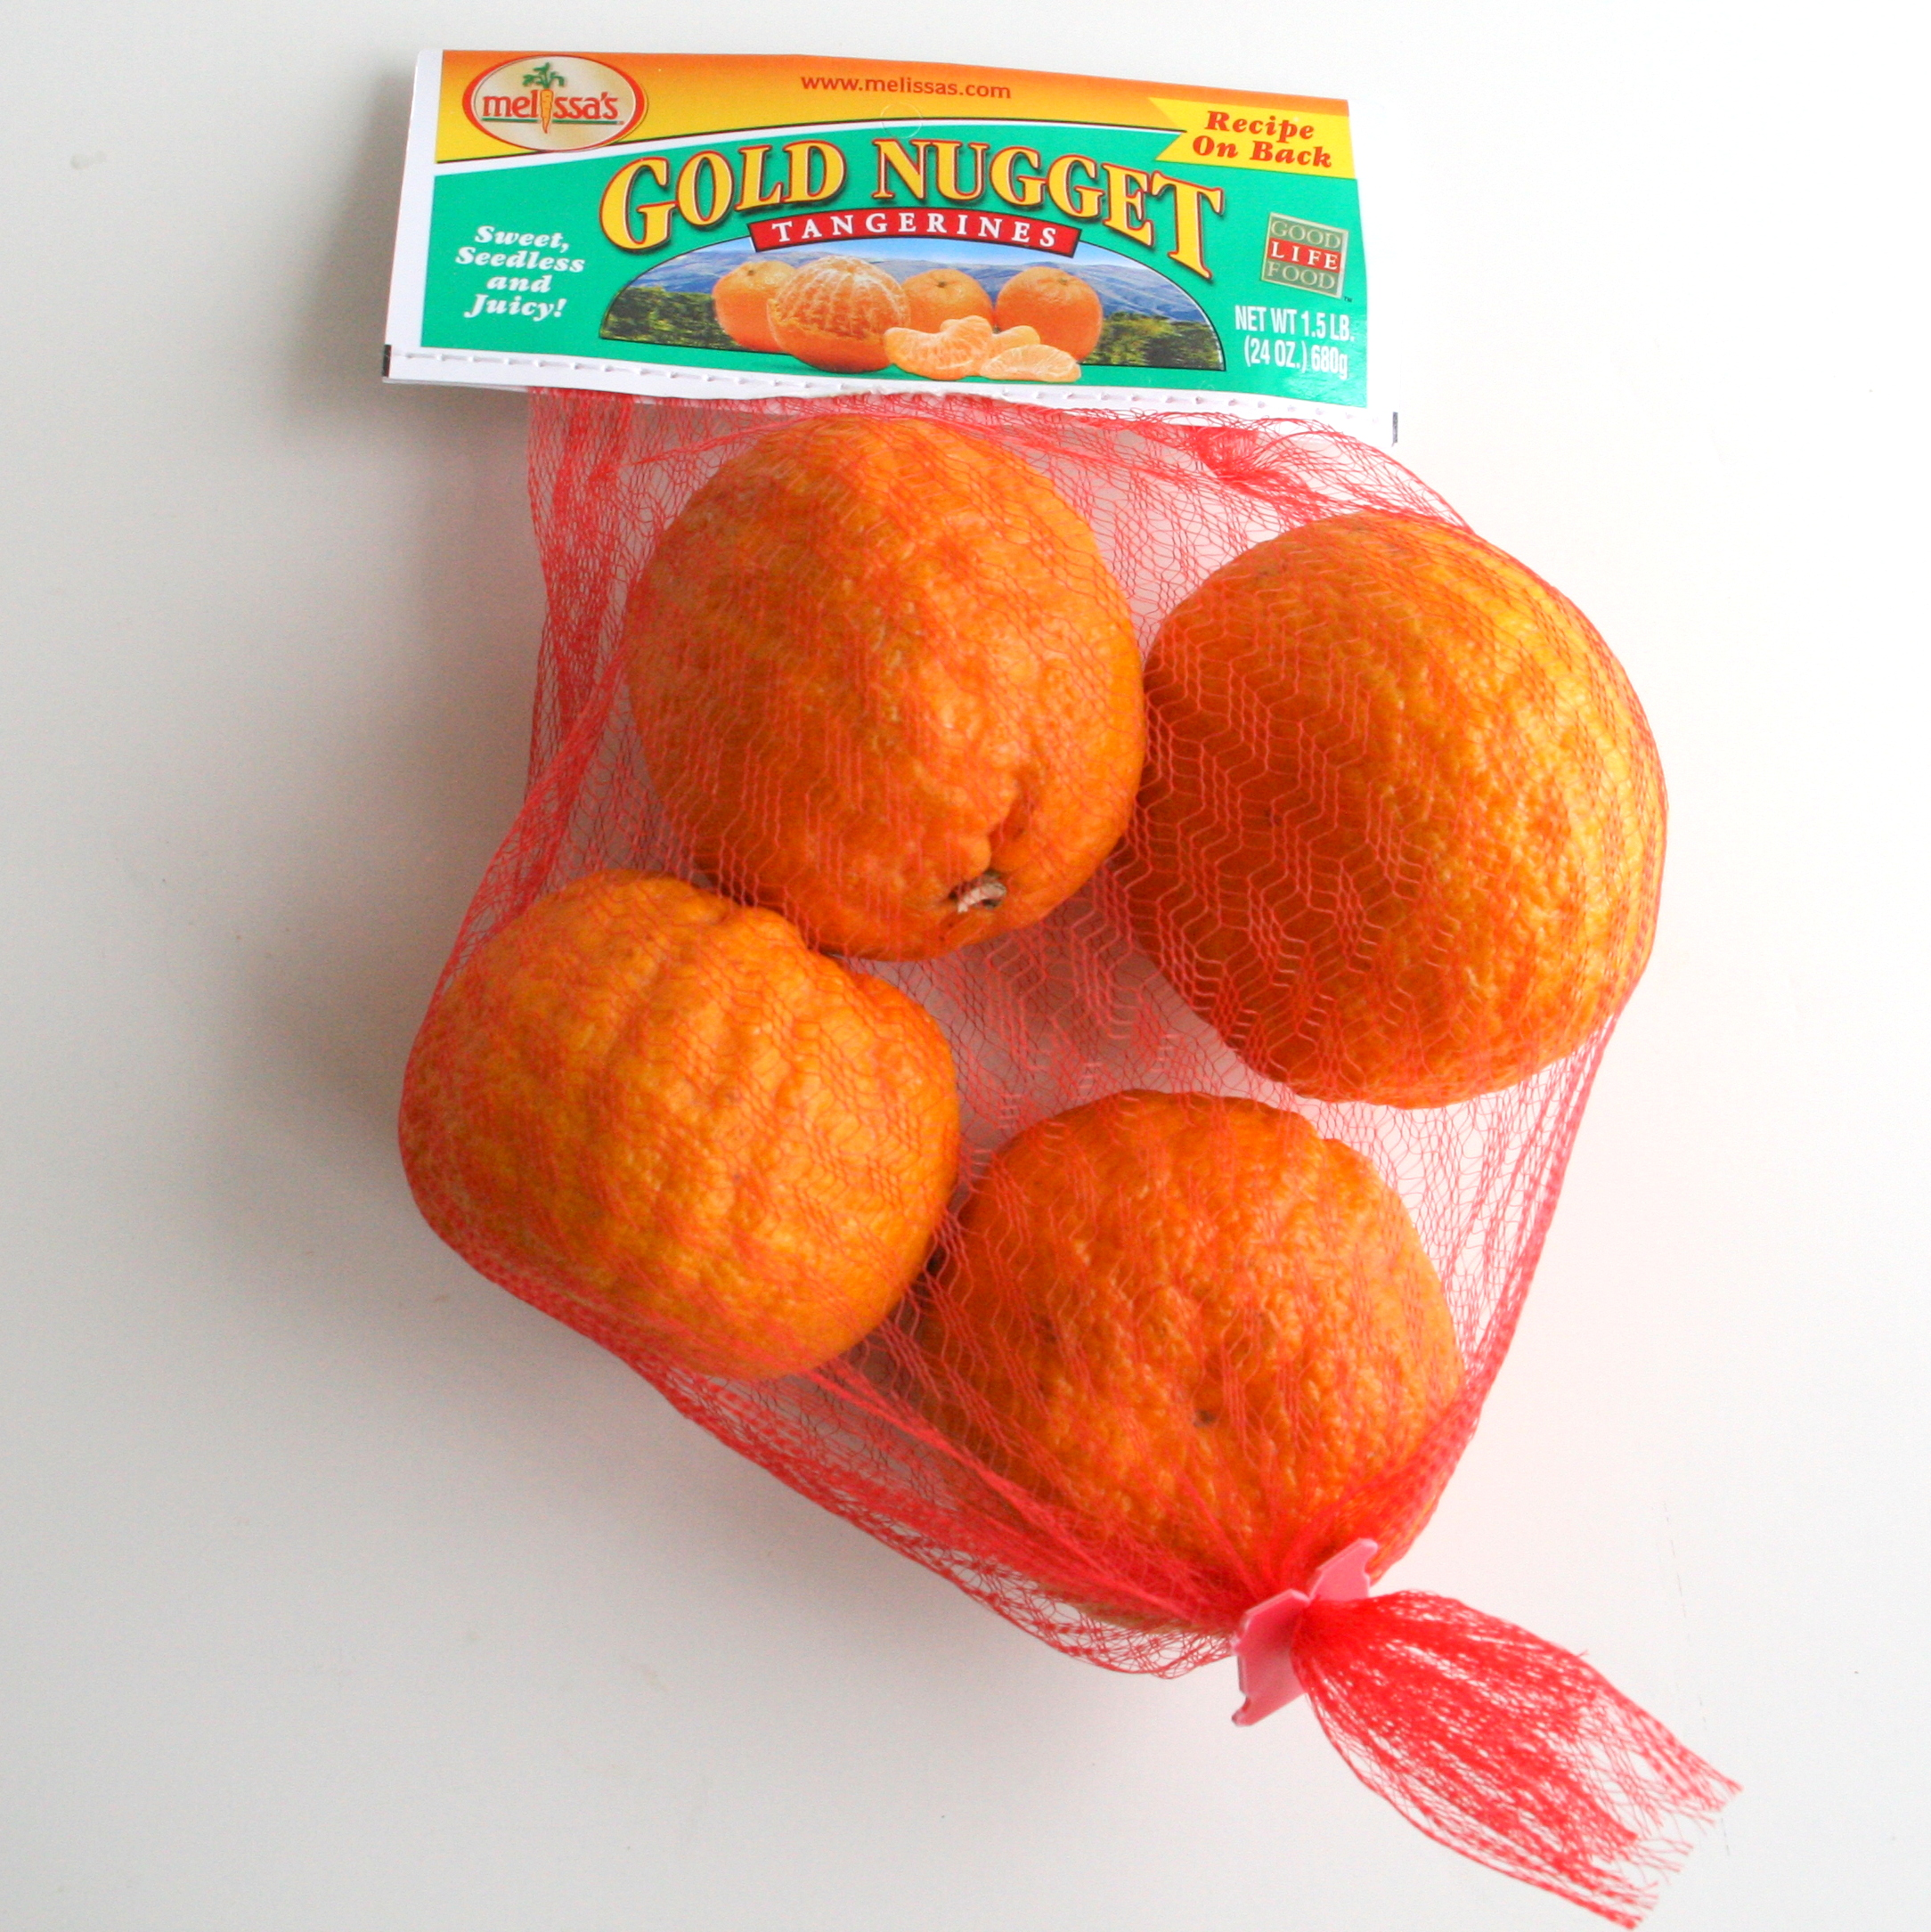 Introducing Gold Nugget Tangerines